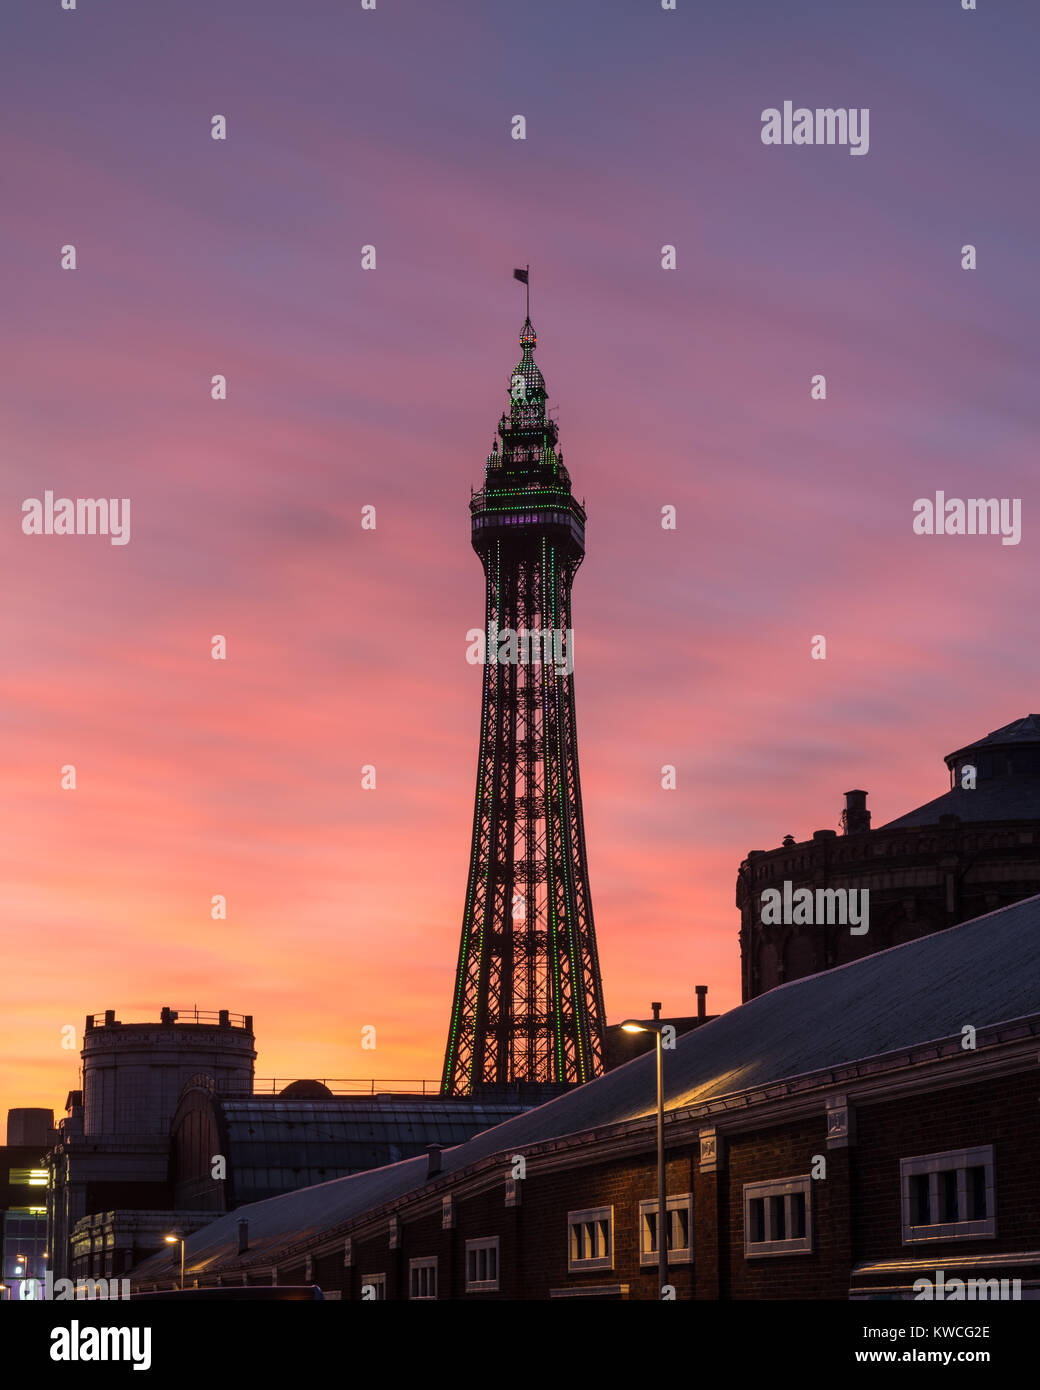 Blackpool Tower with very colourful sunset sky - Stock Image